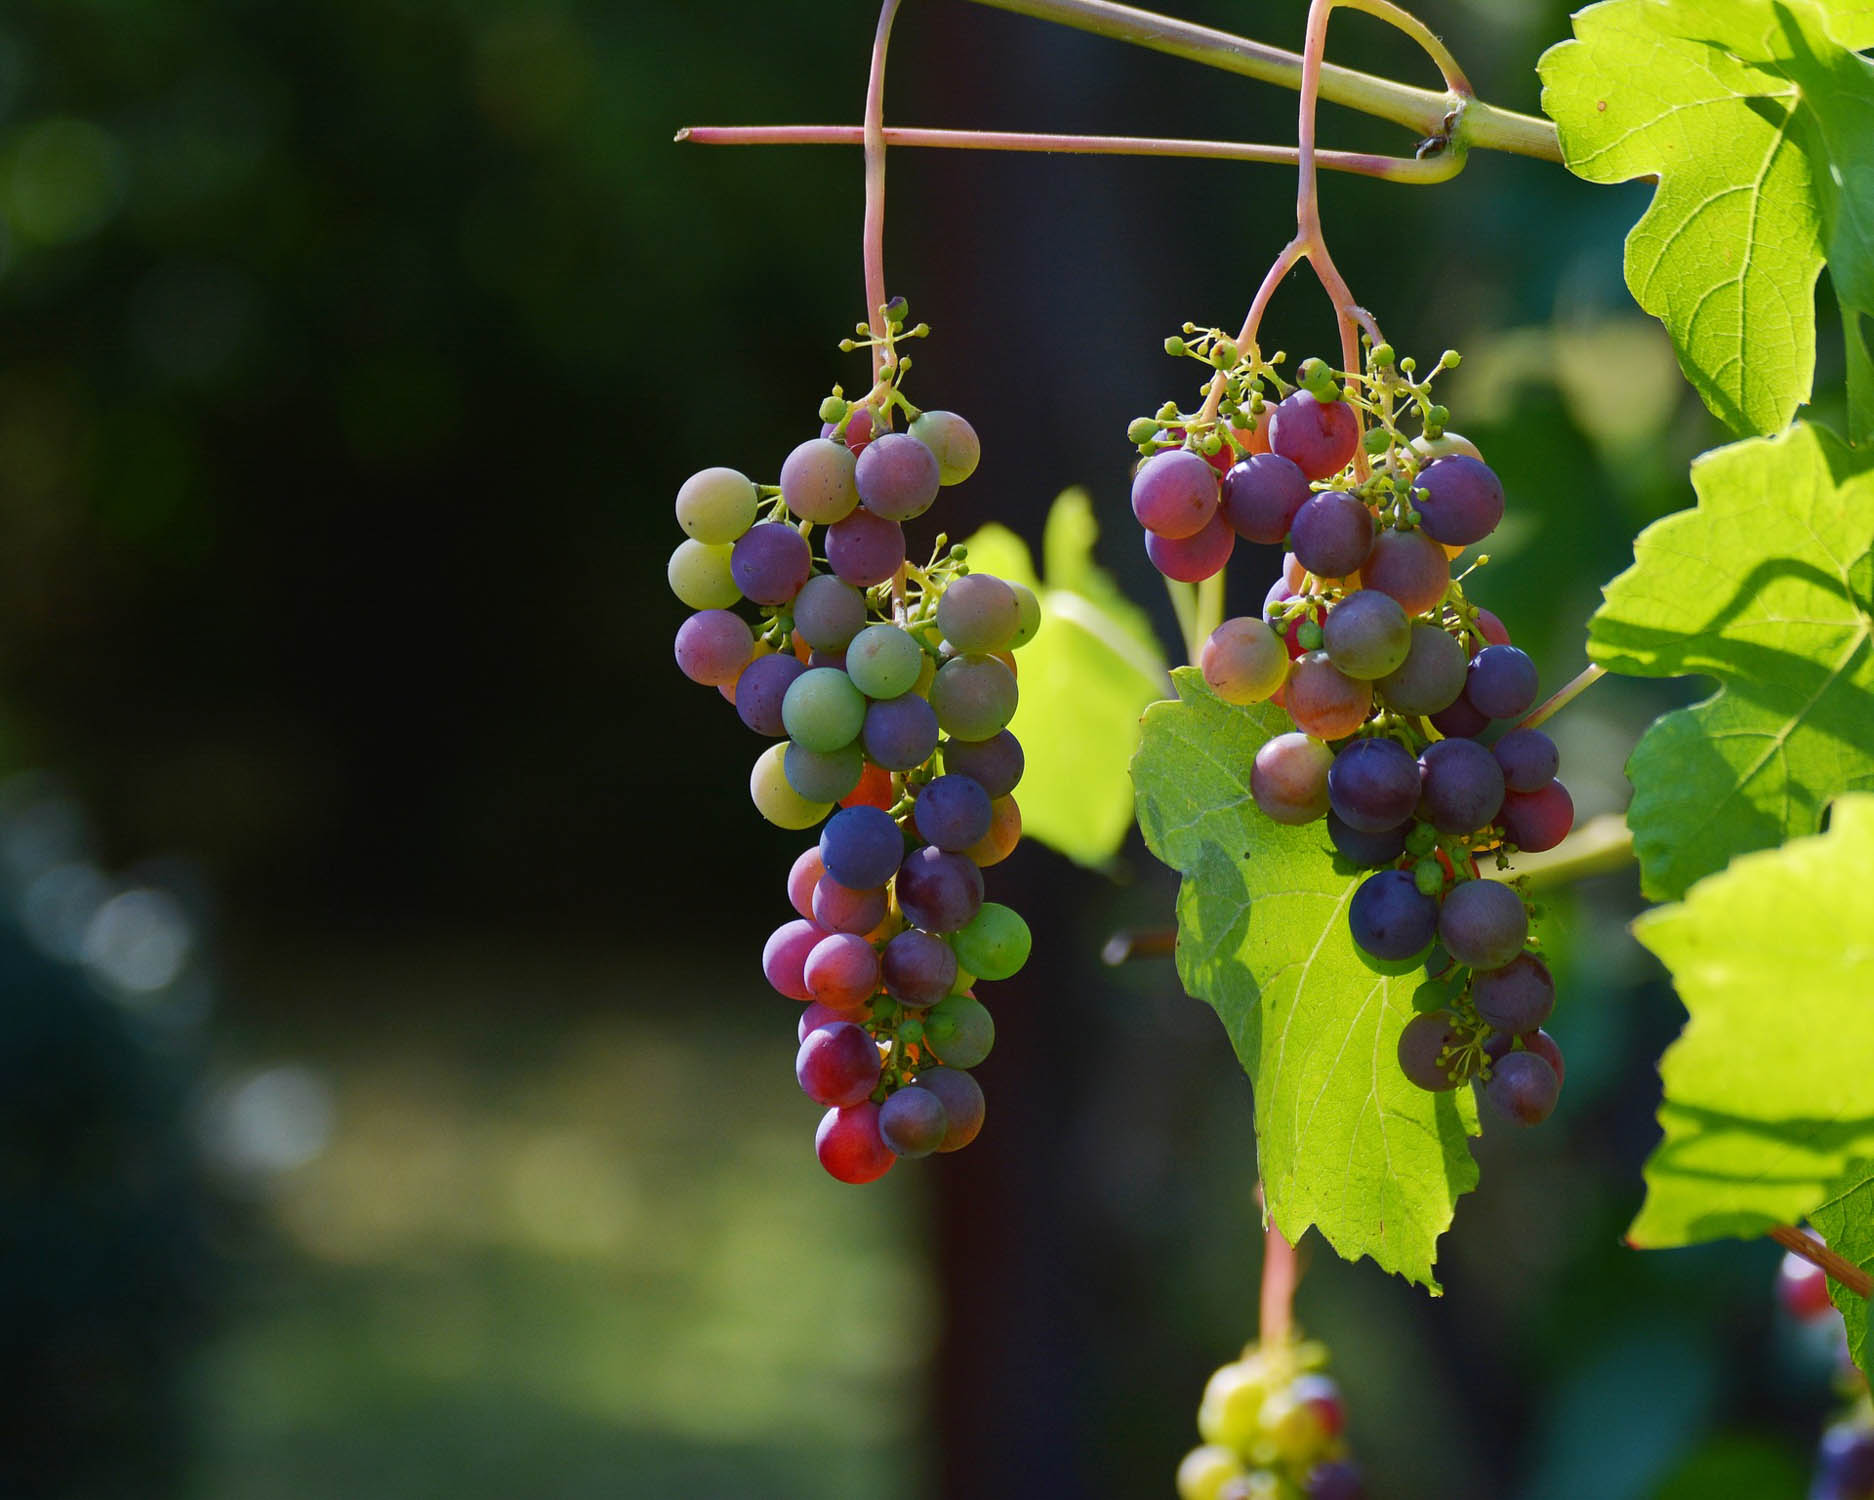 Grapes Gardening College Of Agriculture And Bioresources